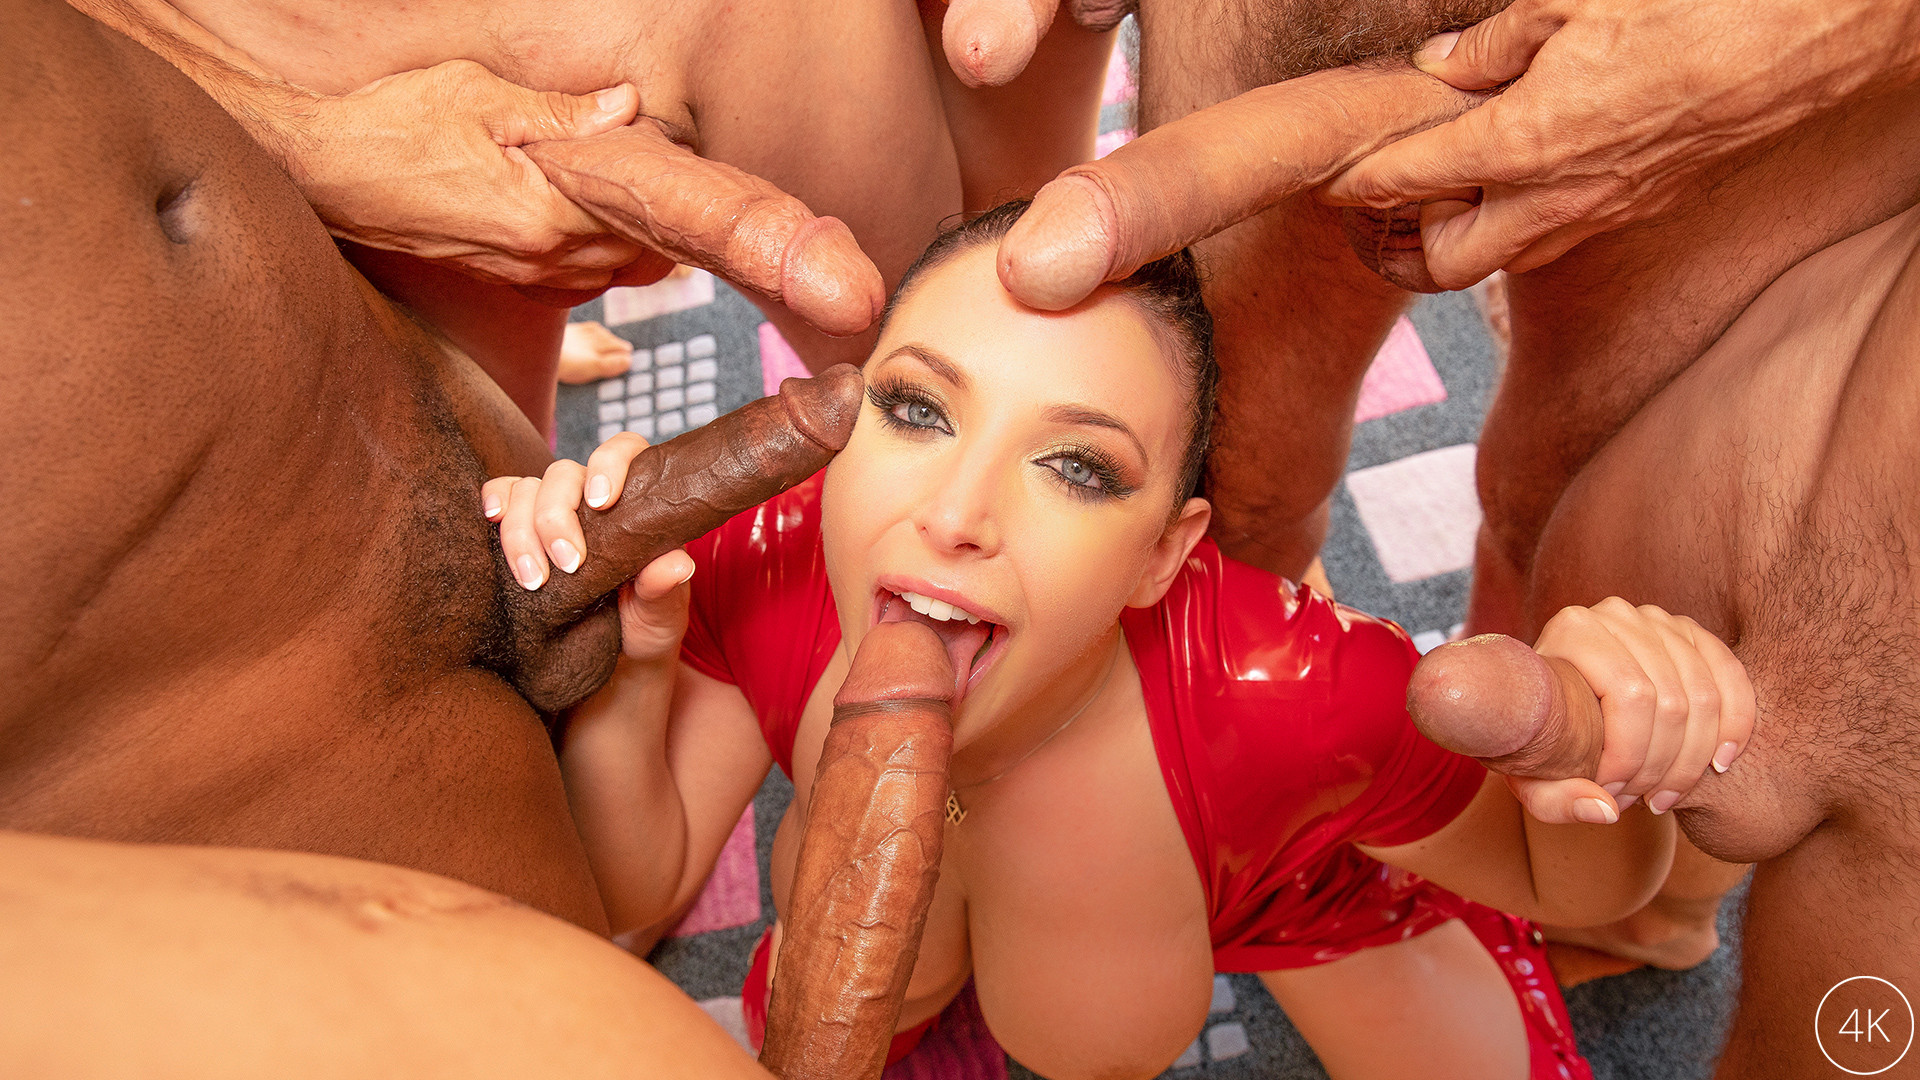 Swarmed By 13 Guys Angela White